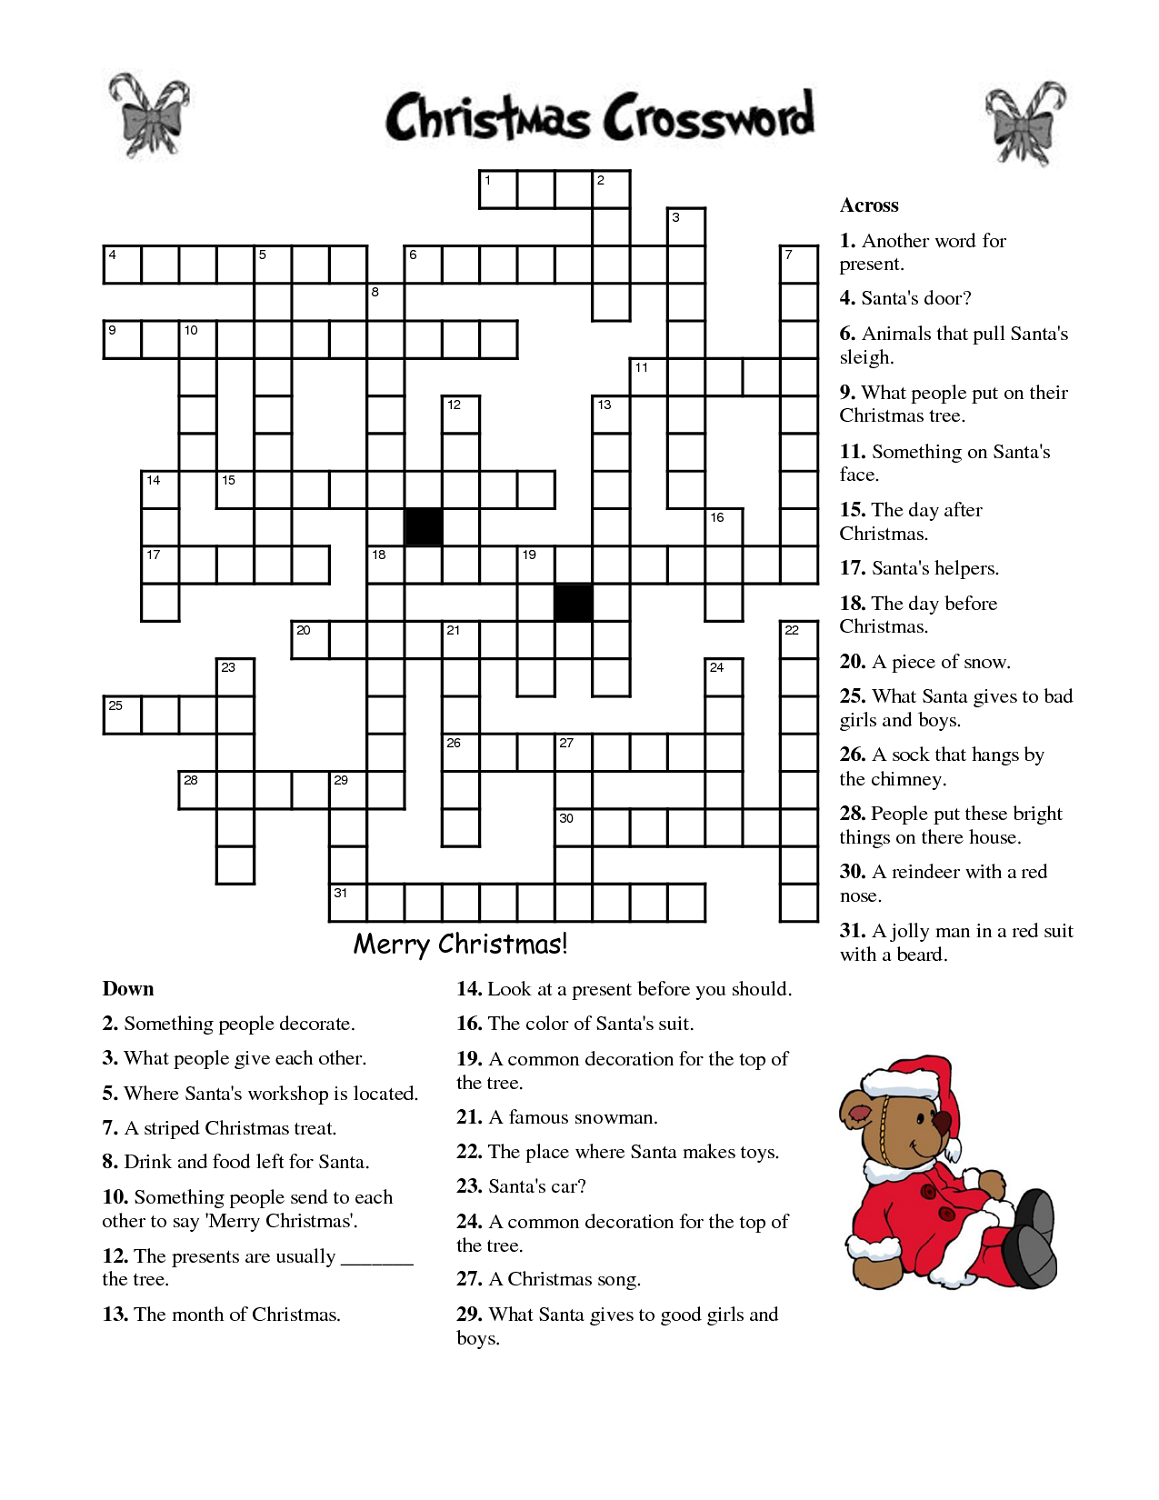 Printable Christmas Crossword Puzzle For Adults